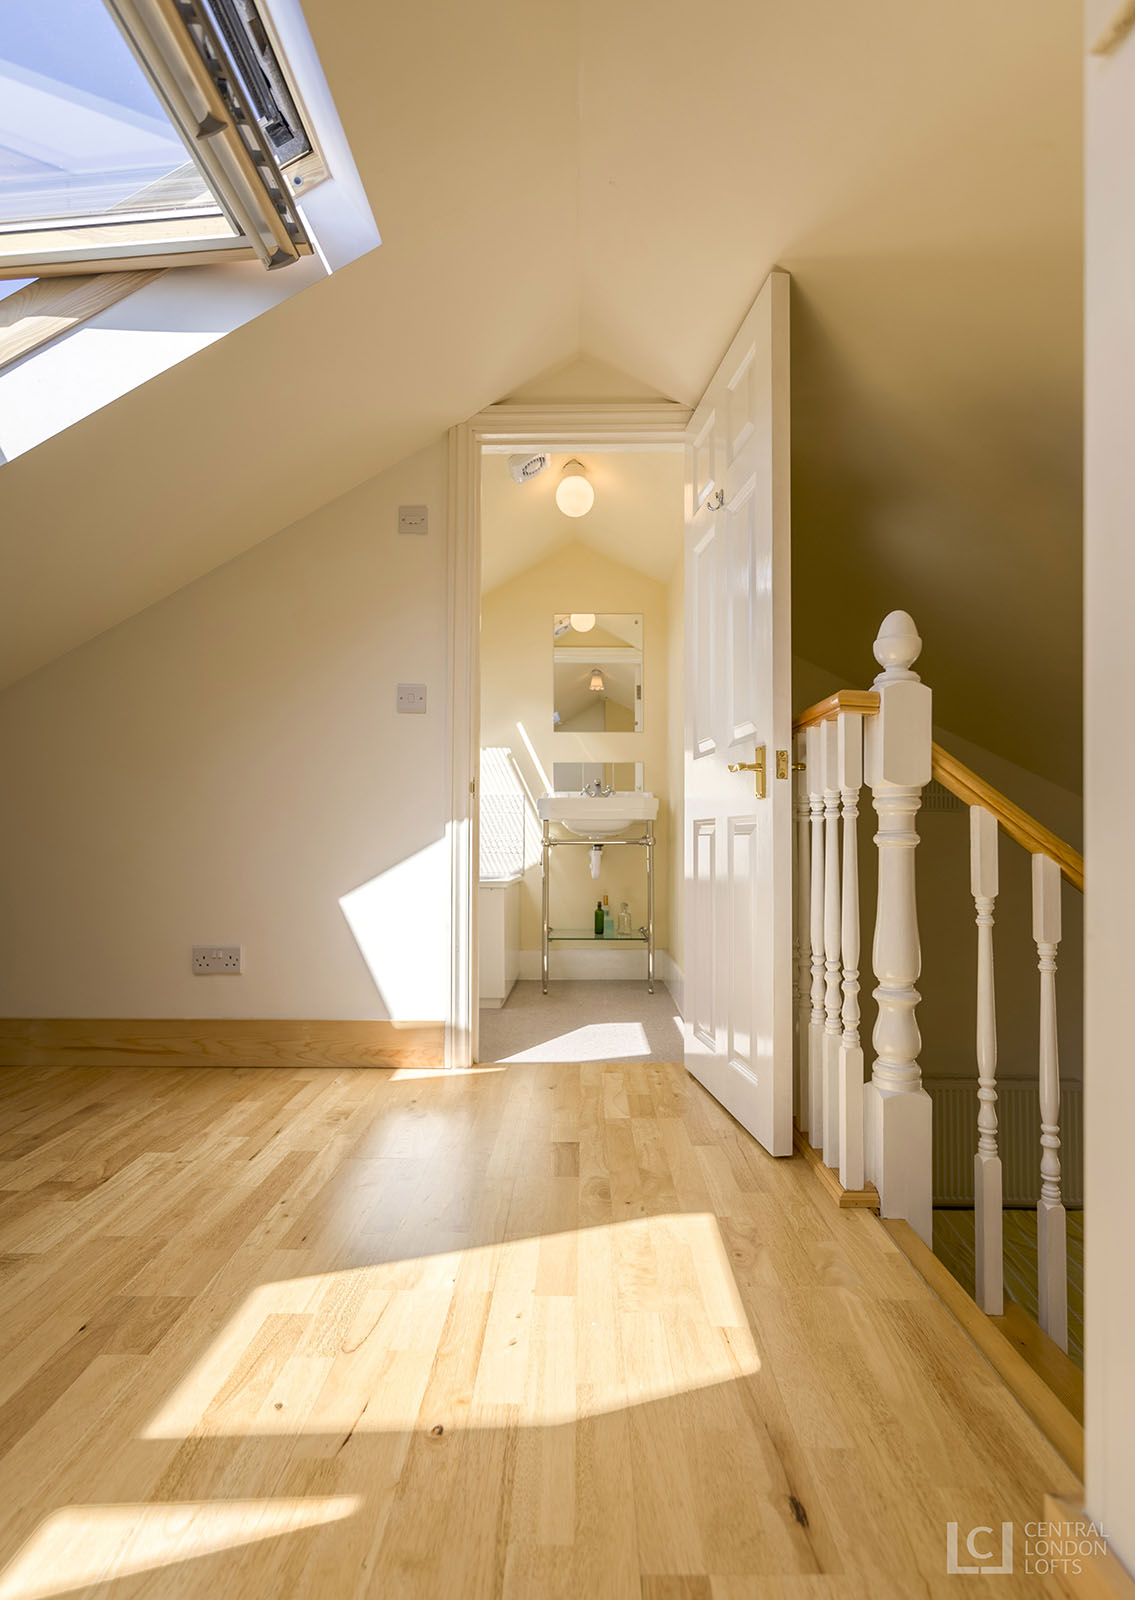 Central London Lofts two floor conversion